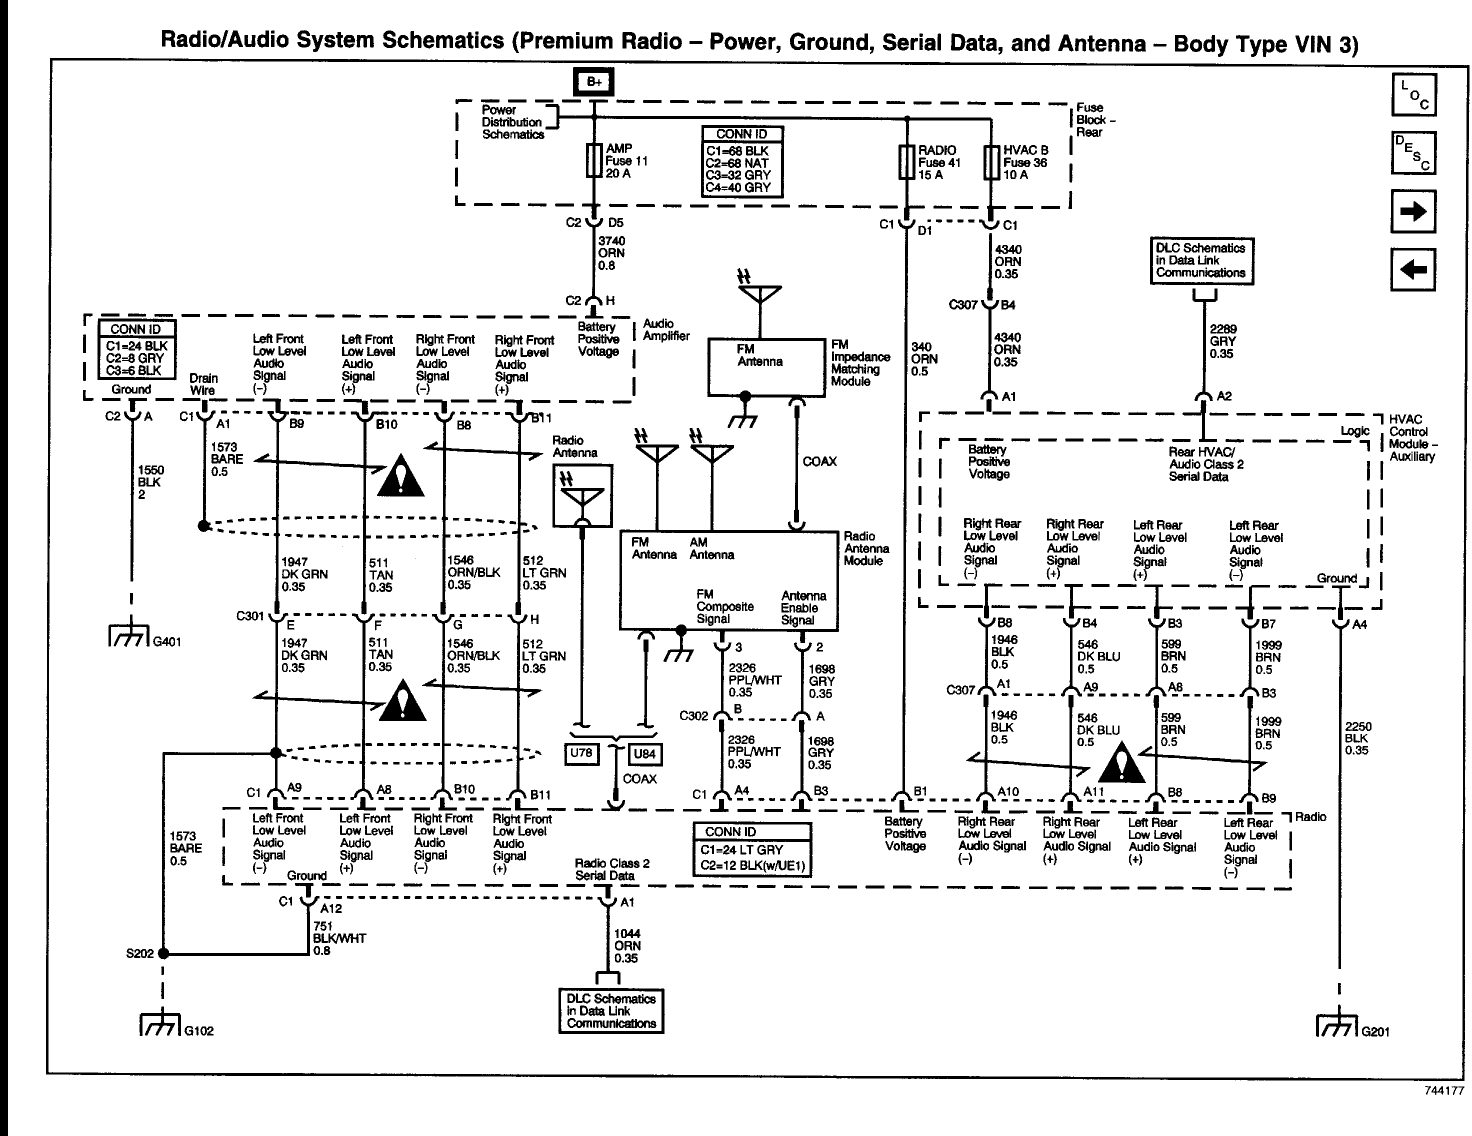 2004 gmc sierra radio wiring diagram | free wiring diagram 2008 gmc radio wire diagram #4